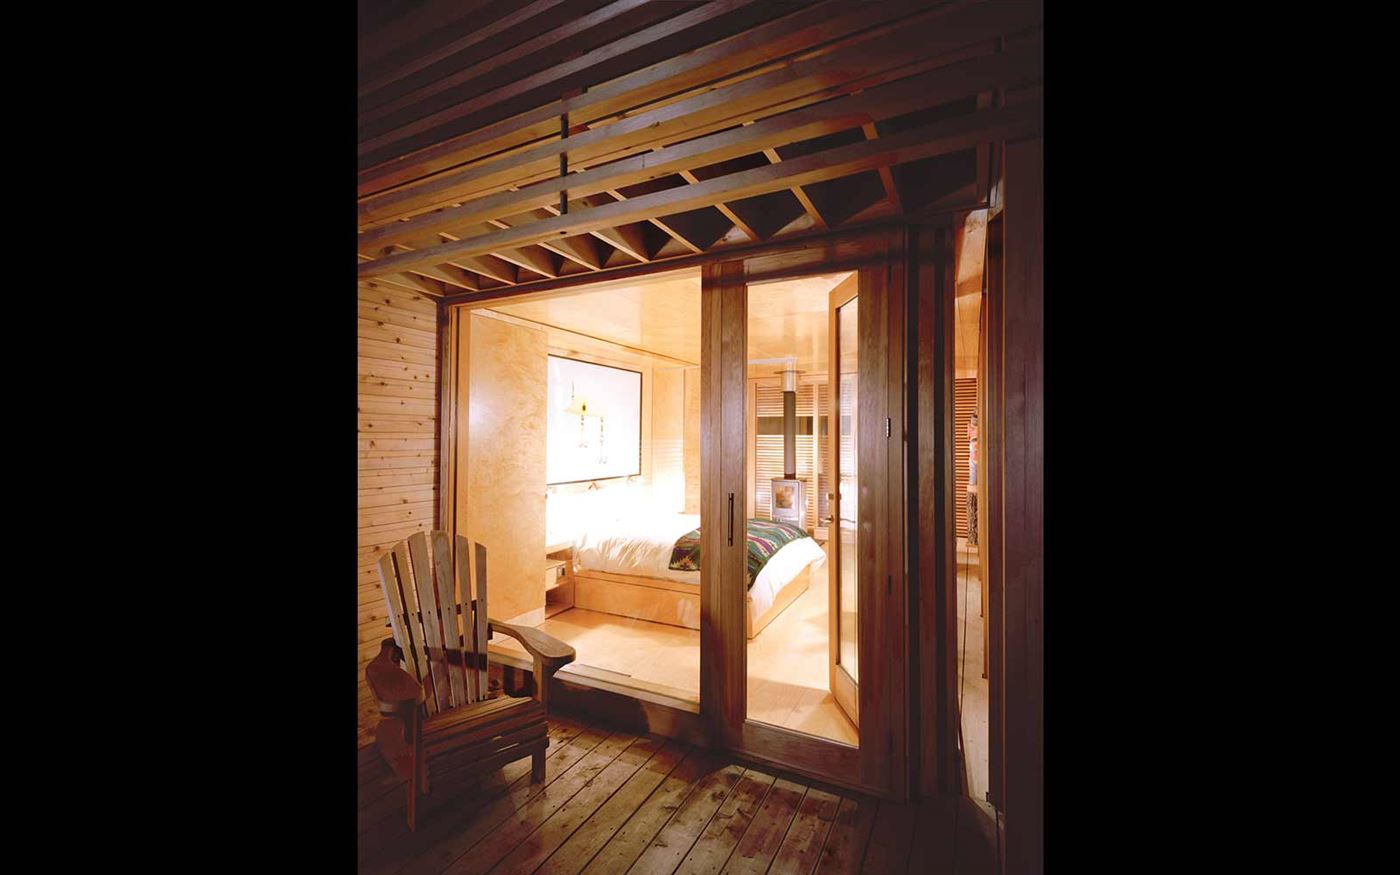 Wood terrace, wall and ceiling, cabin love